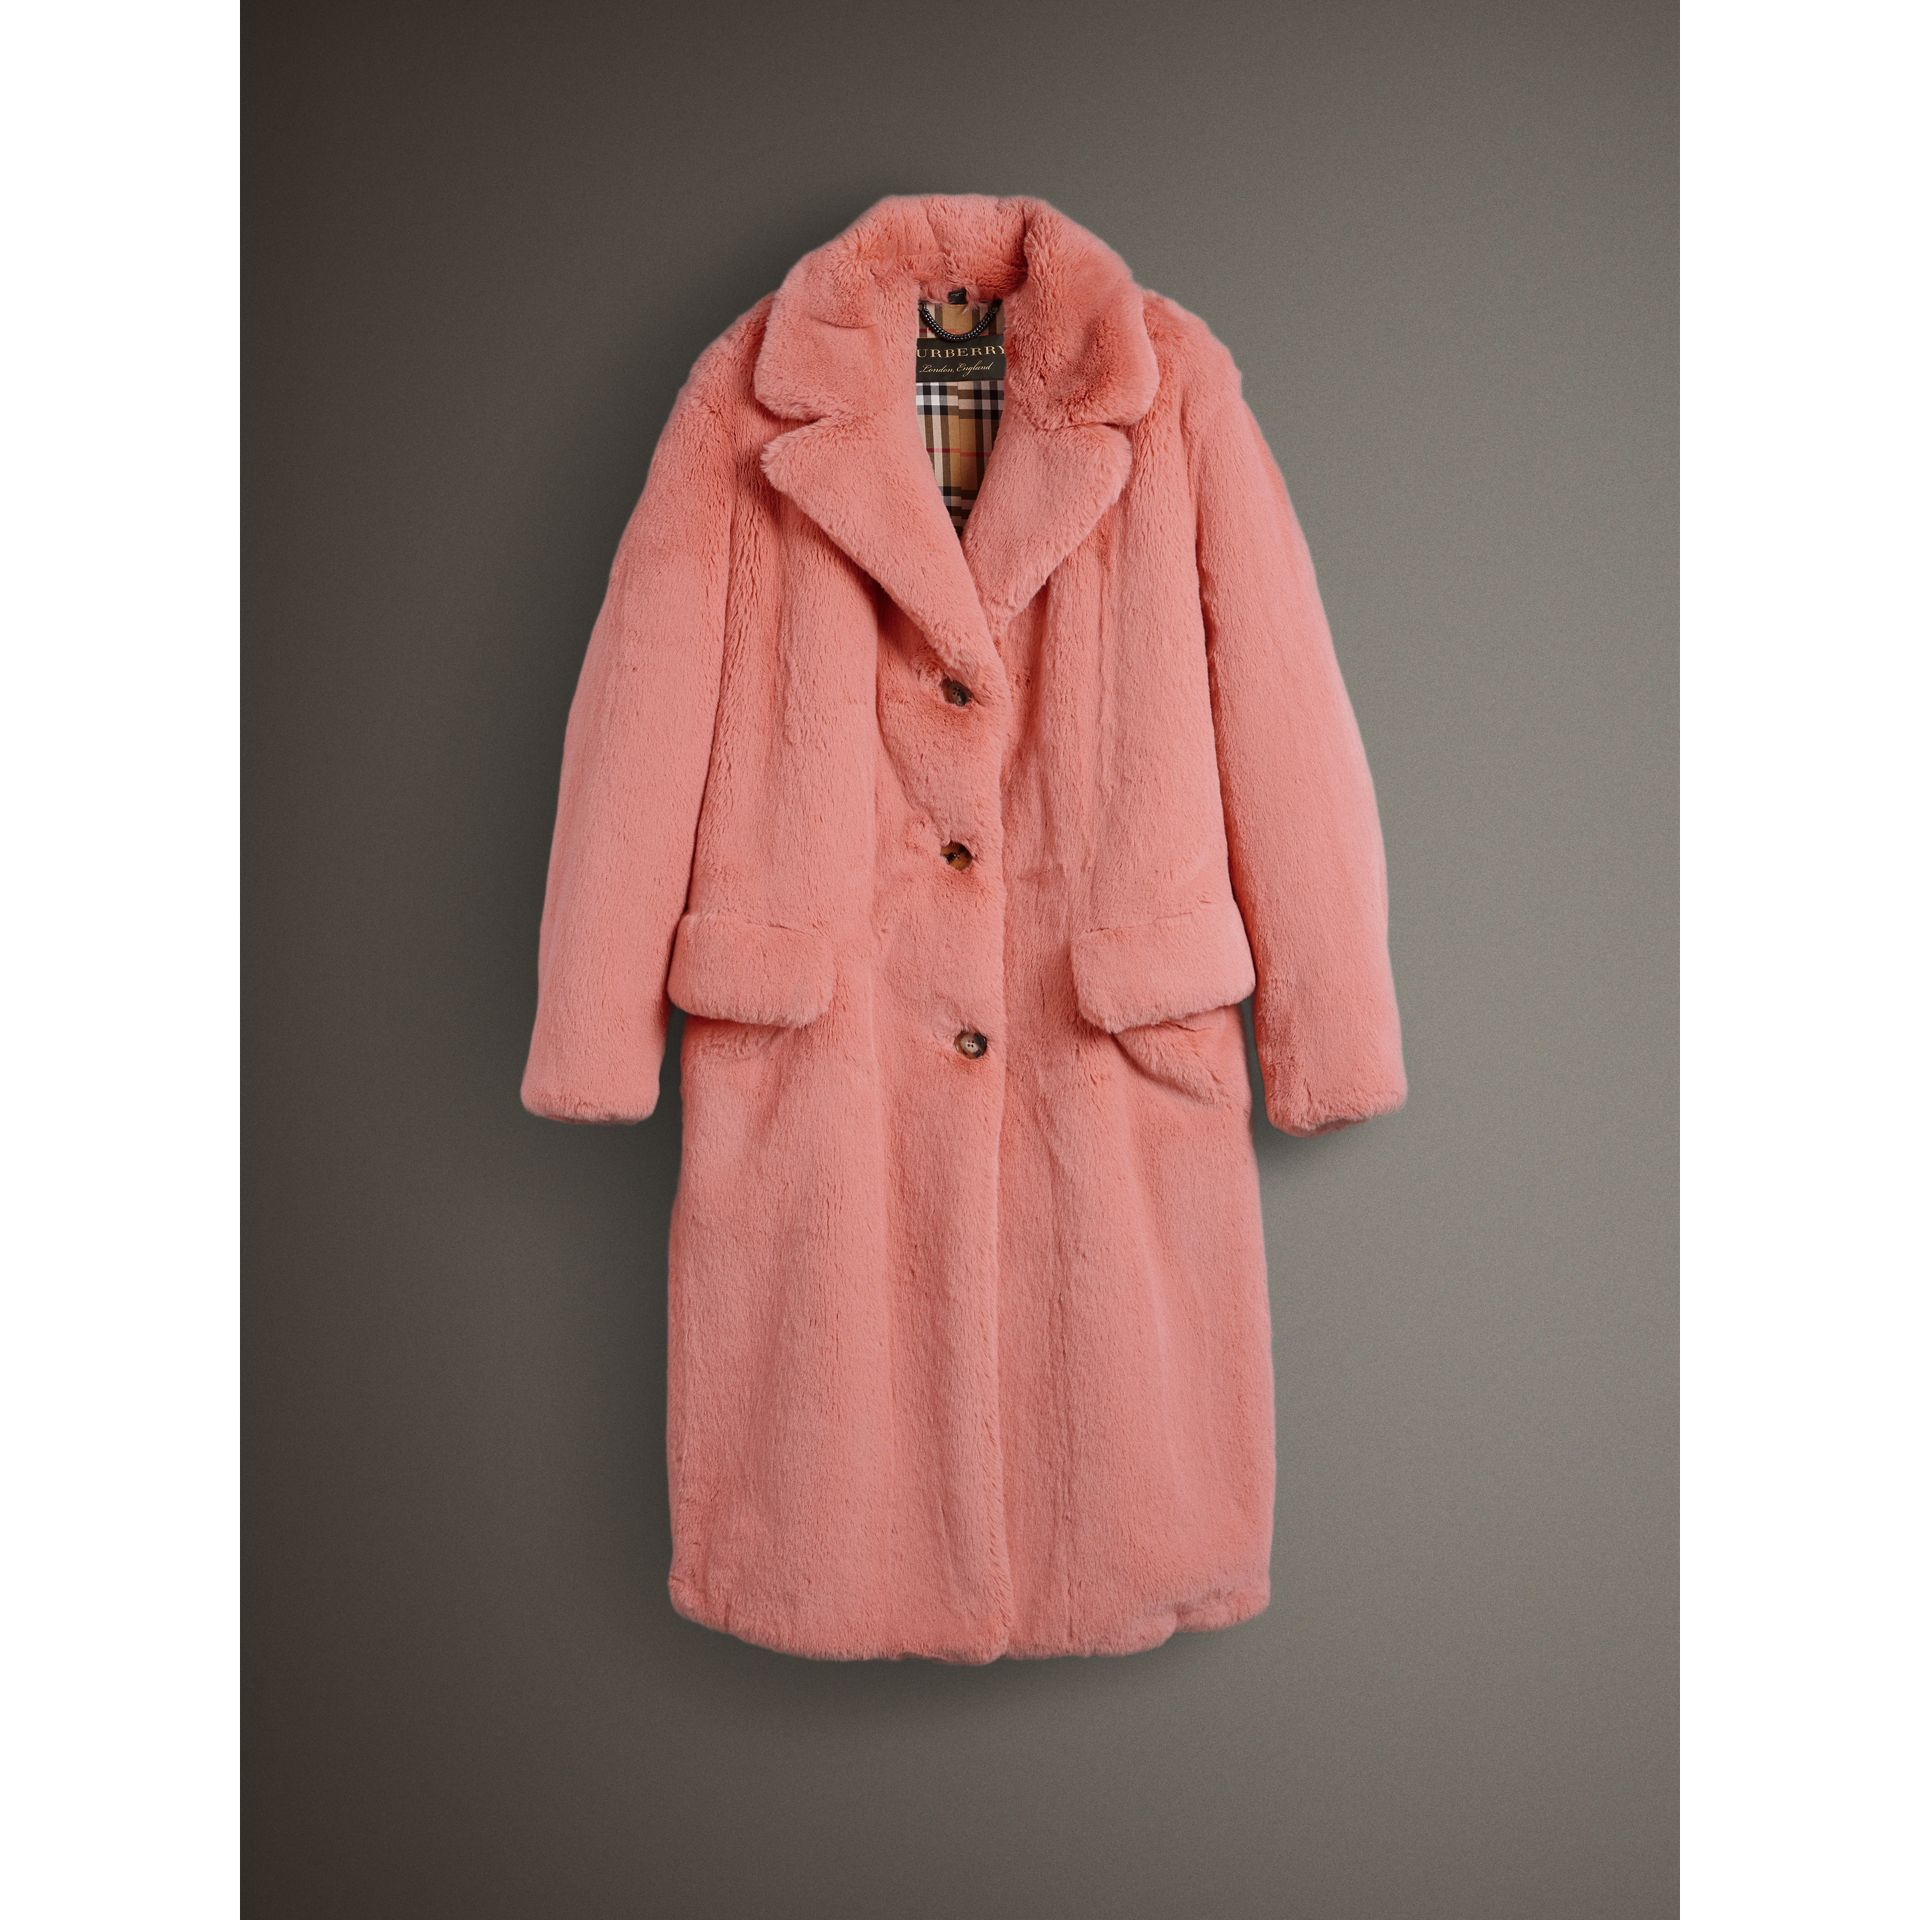 Manteau en fausse fourrure à boutonnage simple (Rose Pâle) - Femme | Burberry - photo de la galerie 4